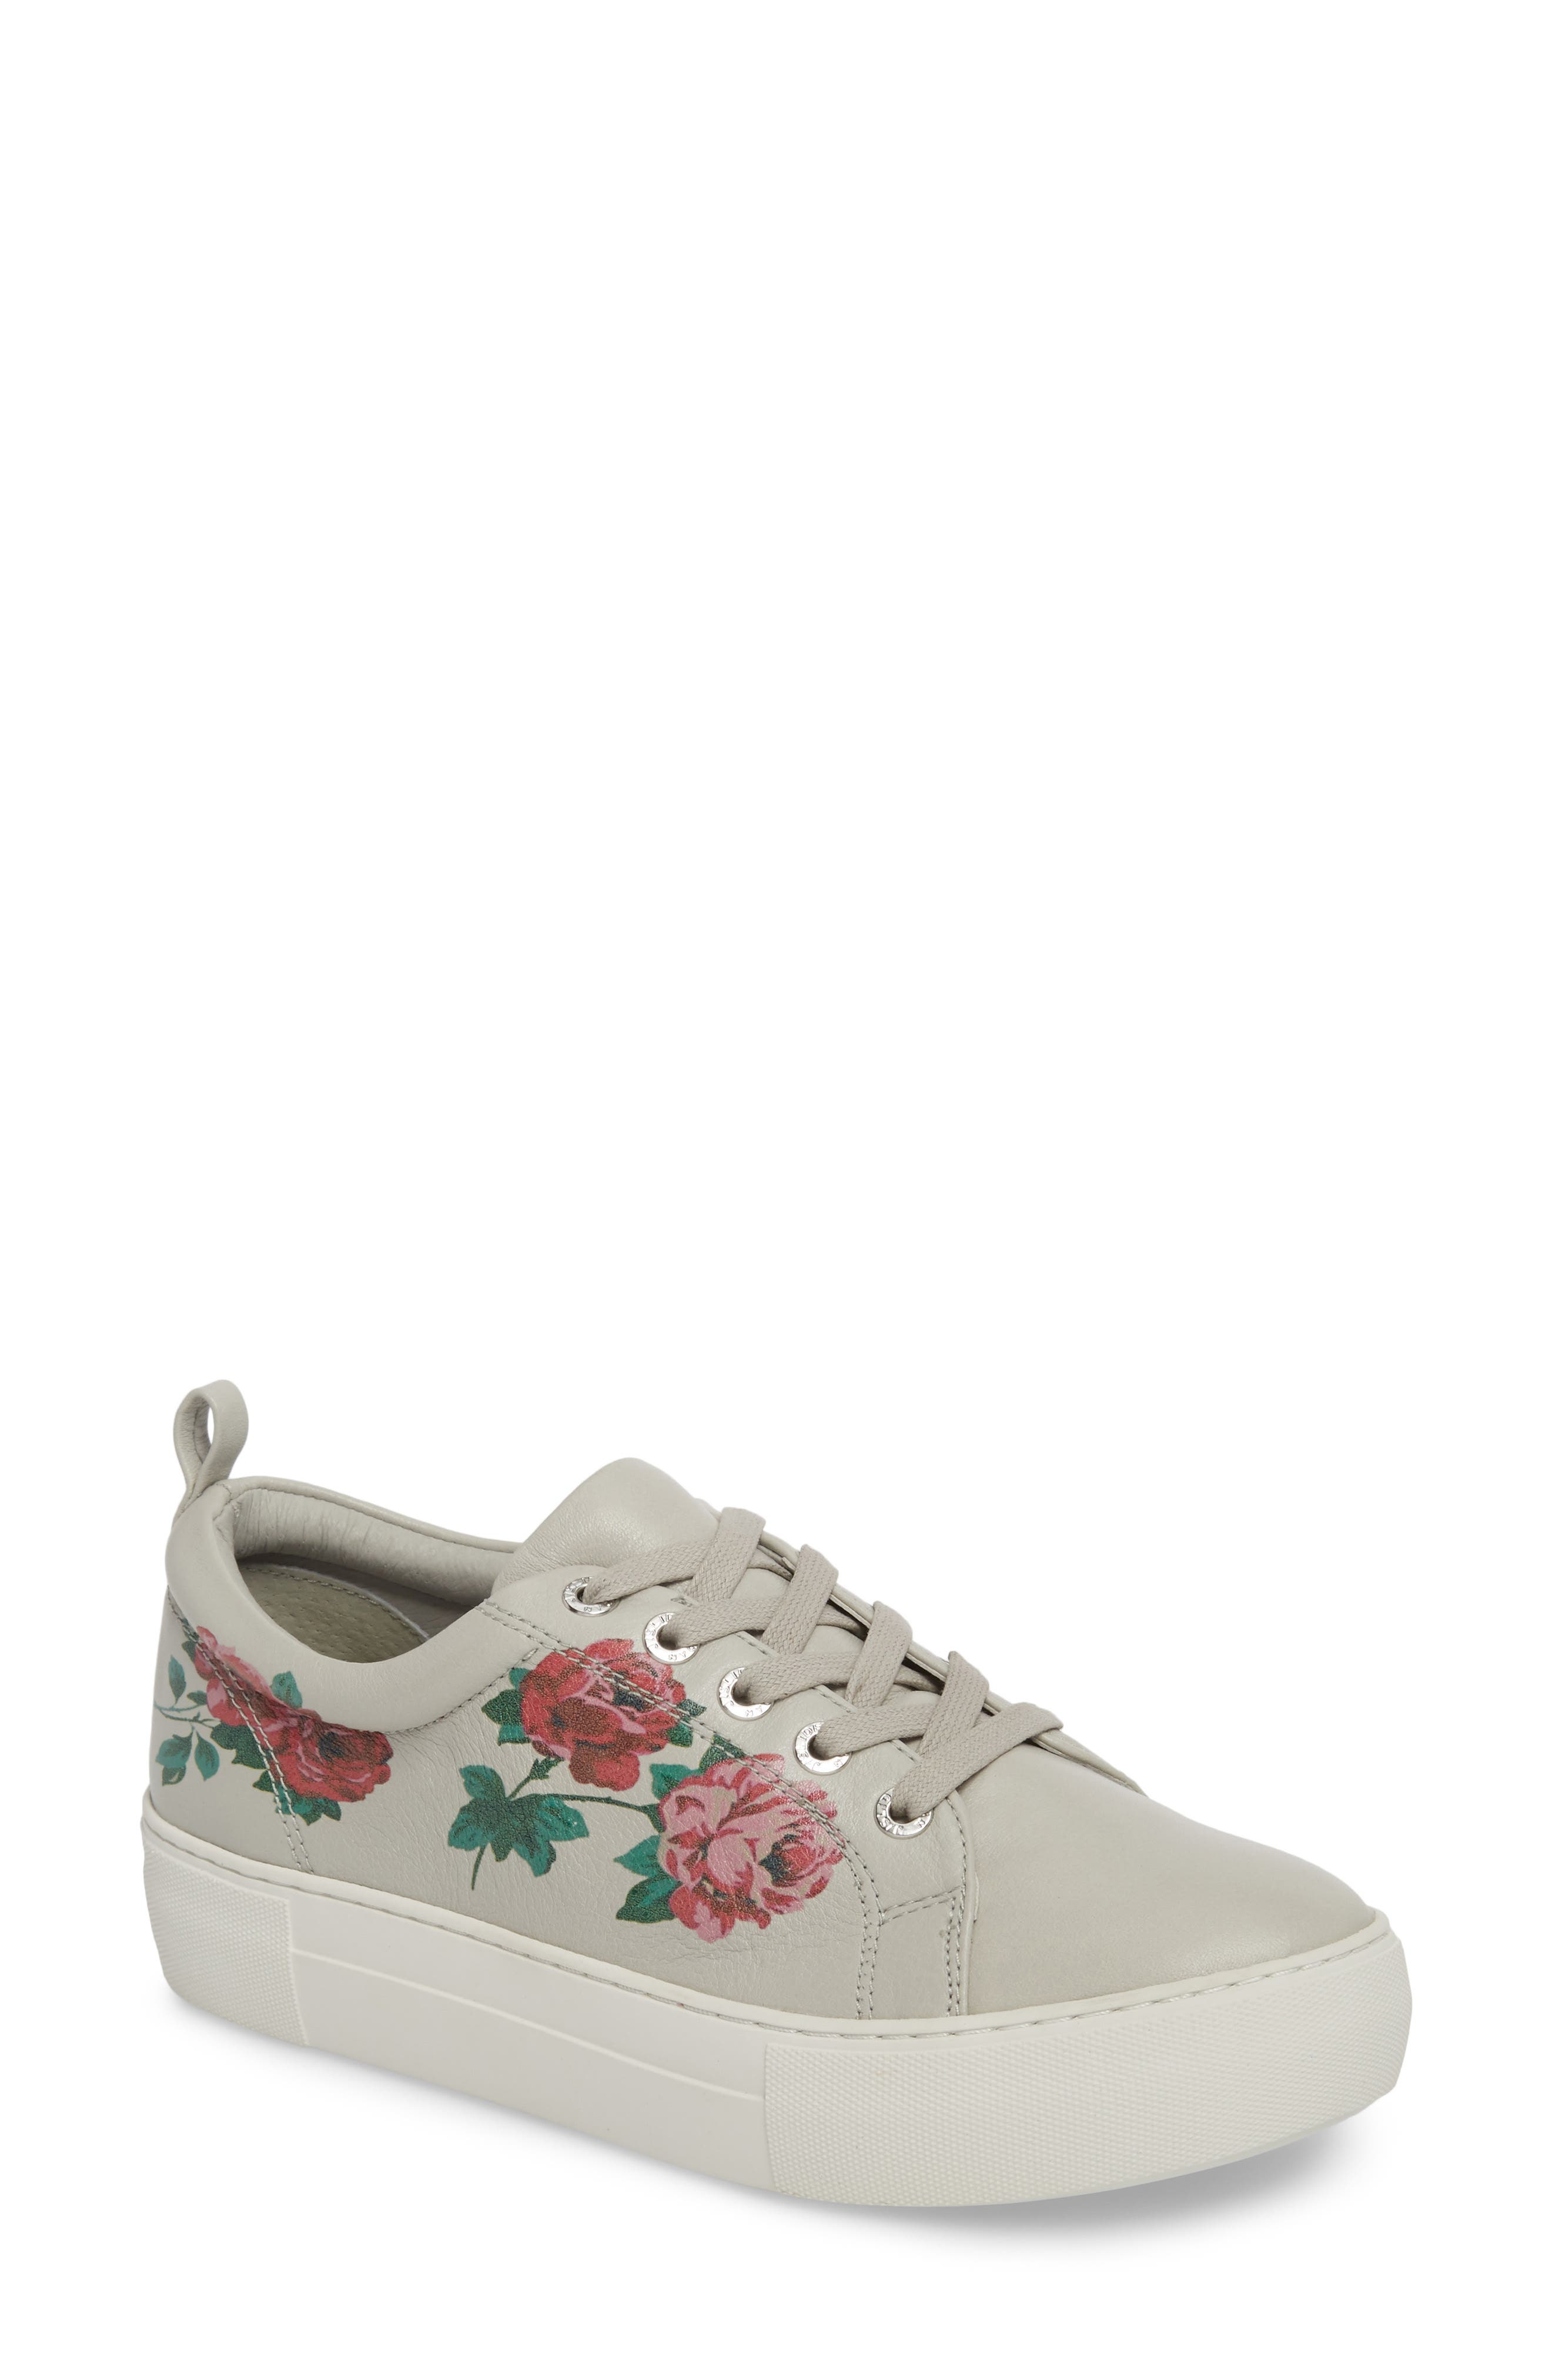 Adel Floral Sneaker,                             Main thumbnail 1, color,                             Light Grey Leather